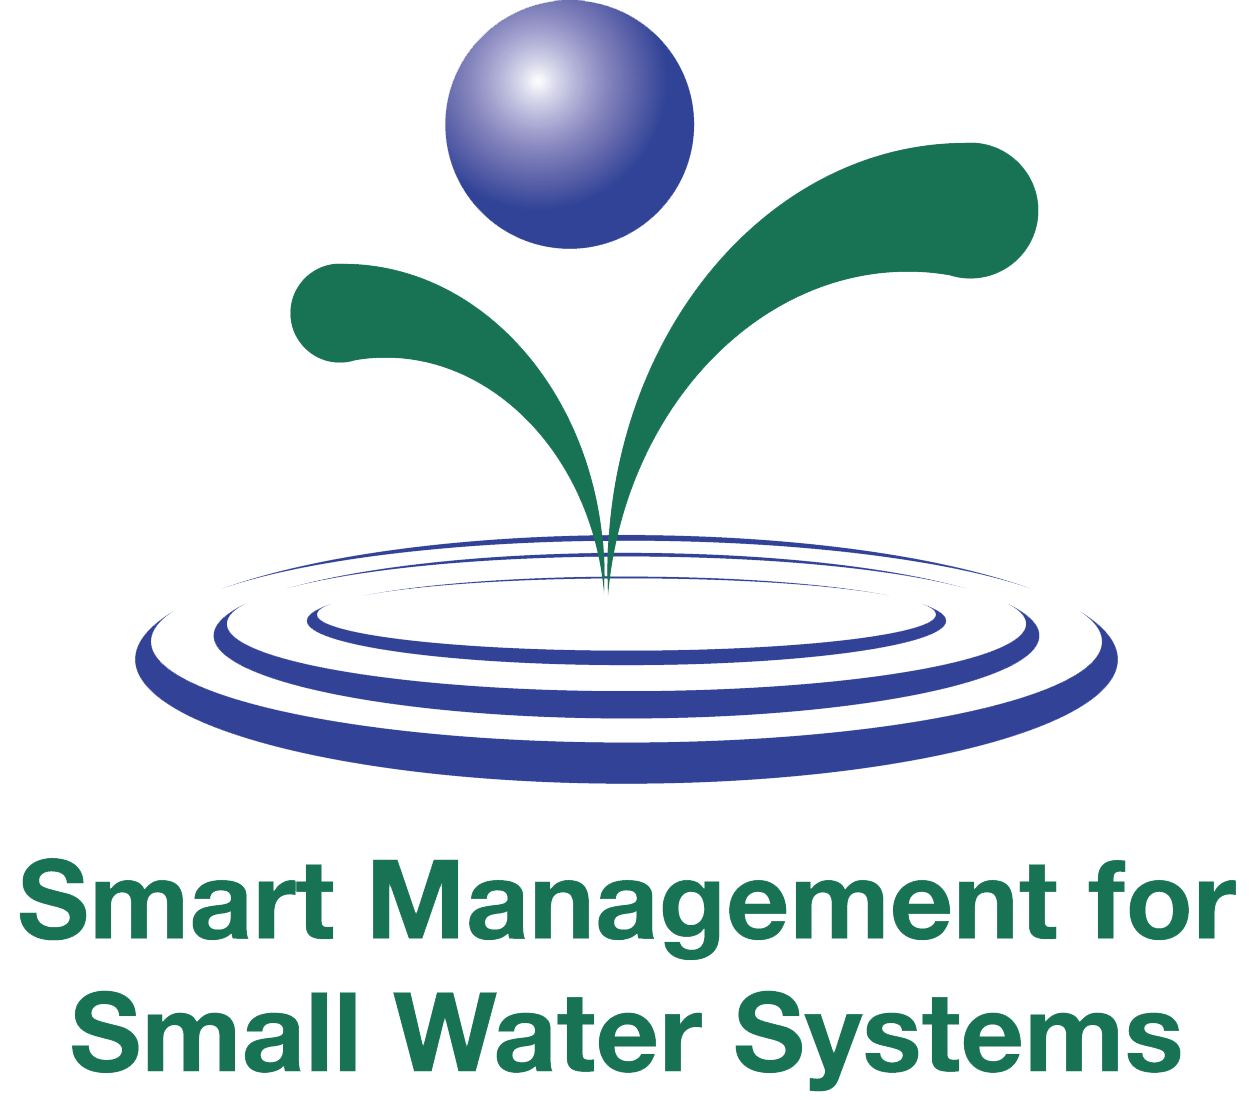 Smart Management for Small Water Systems Logo